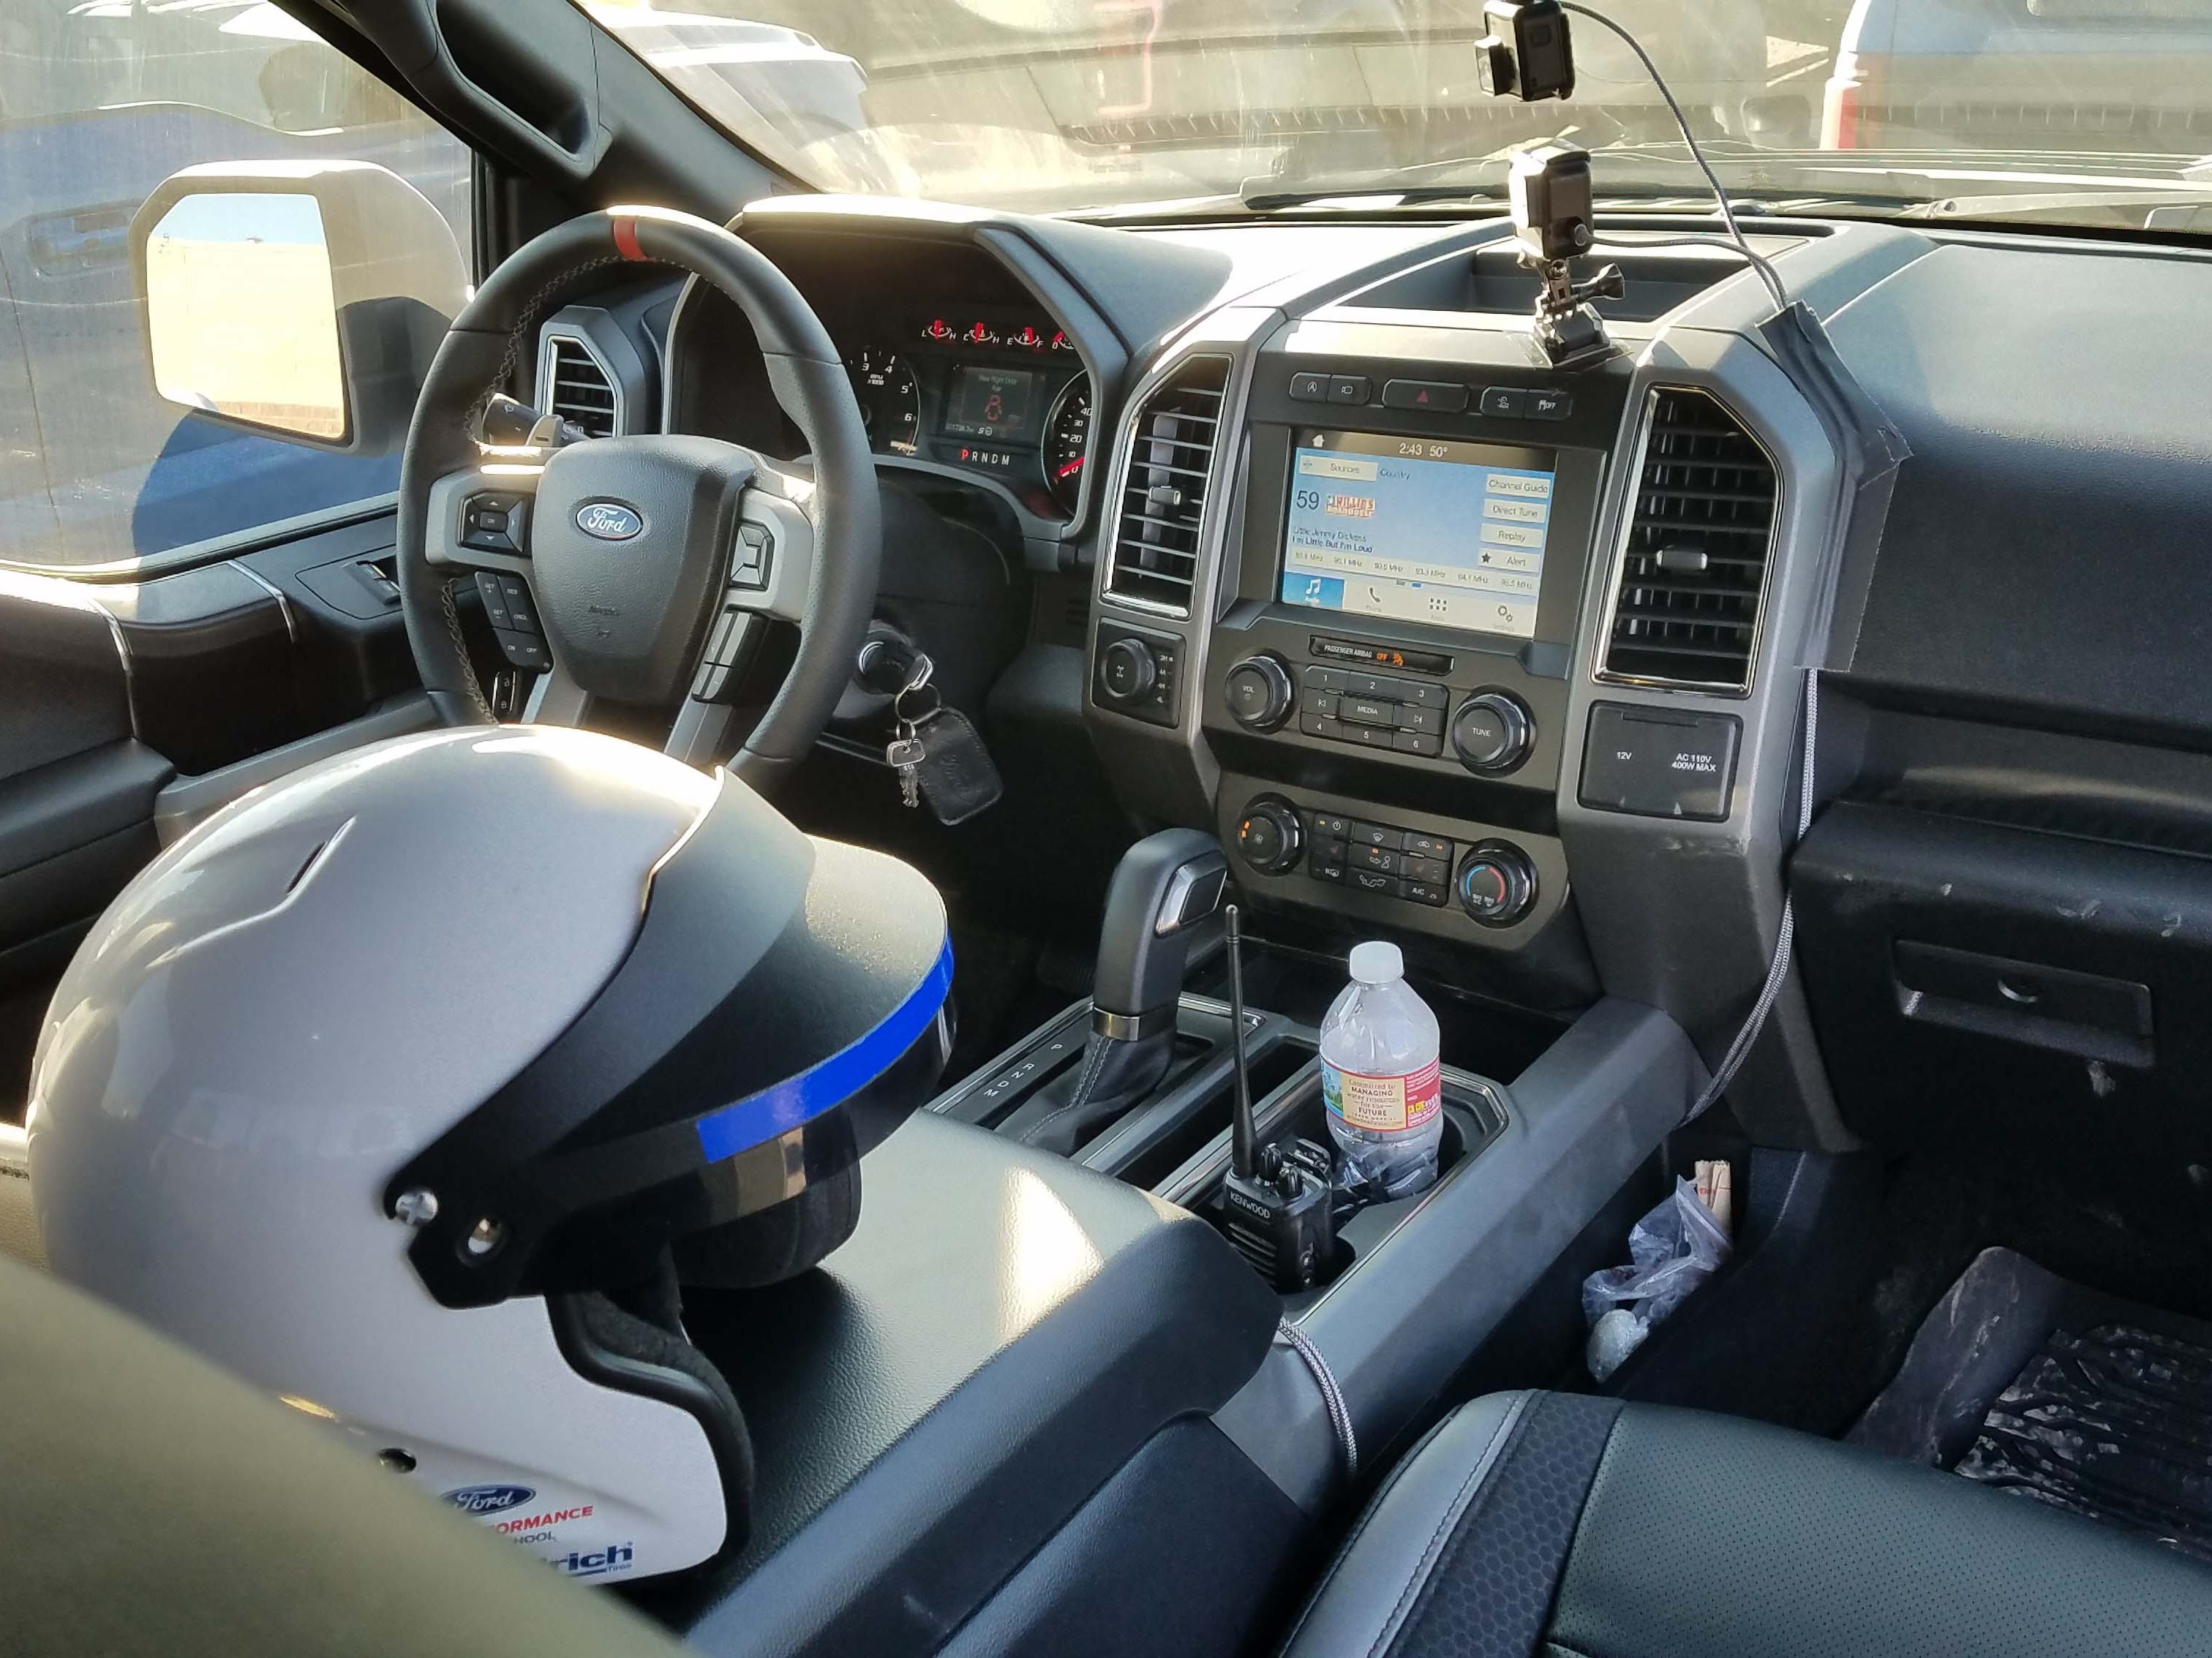 The interior is a livable place for drivers whether on the way to work, or driving hard on an off-road course.